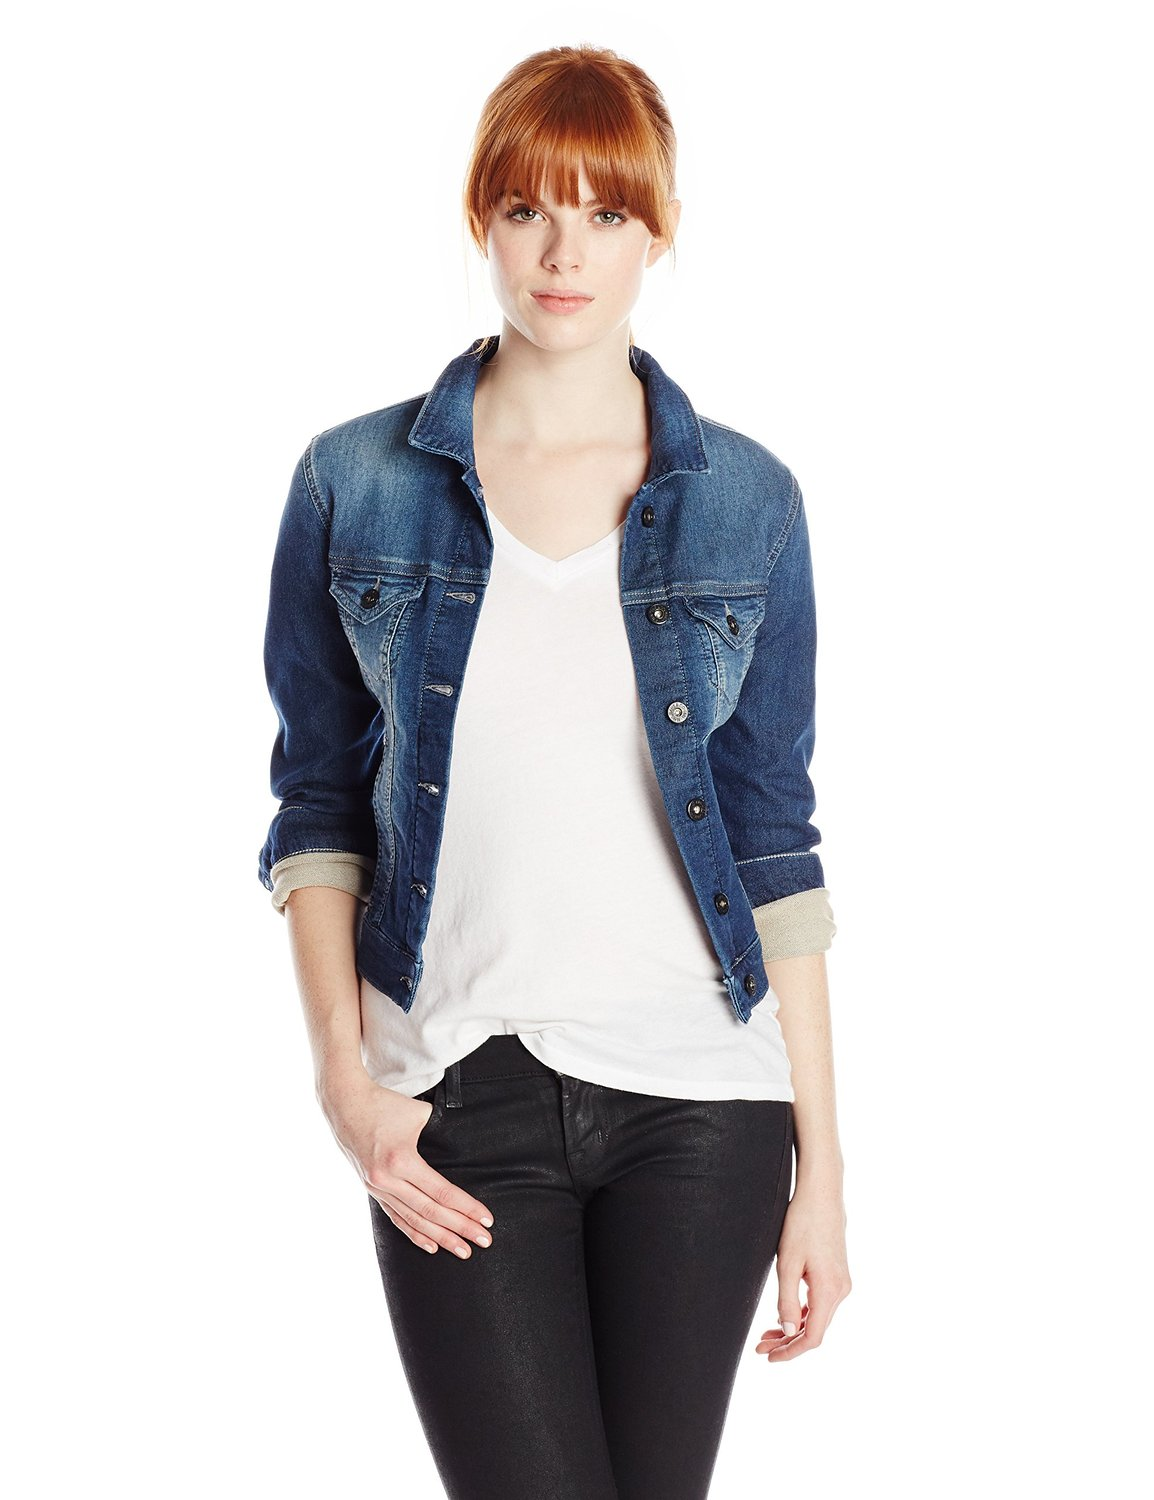 2016 Kot Ceket Modelleri ve Kombinleri Most-Beautiful-Denim-Jacket-Women-Models